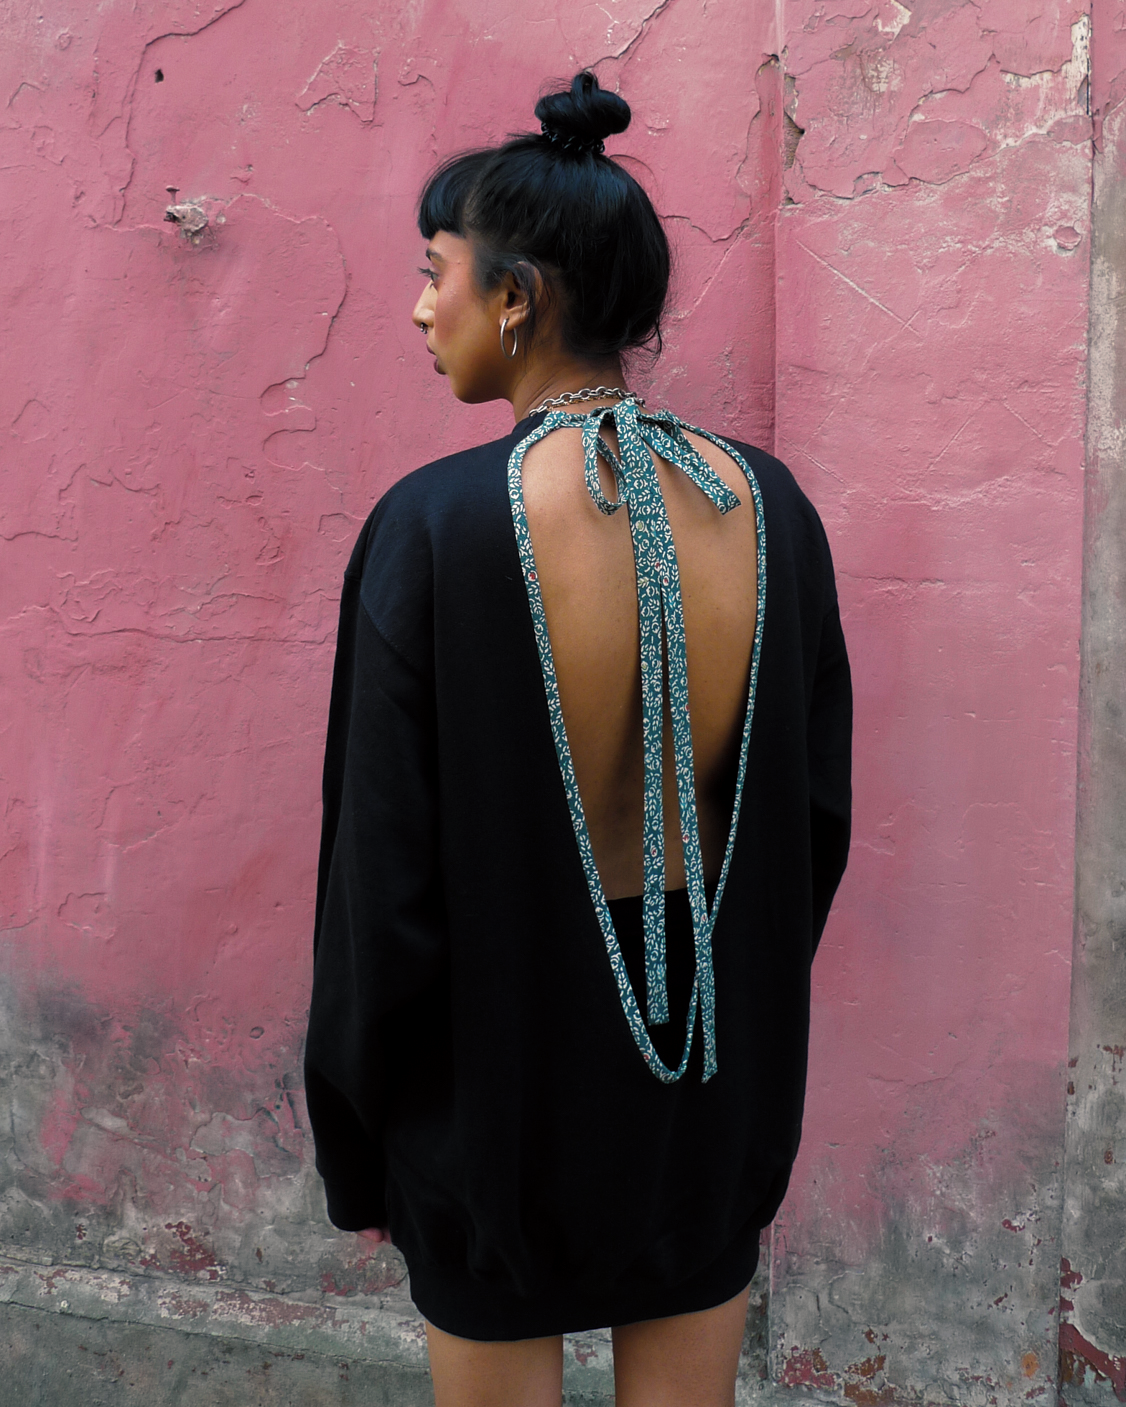 Sneha wears ATIKA Studio Tie Back Sweater with vintage Kimono detail.